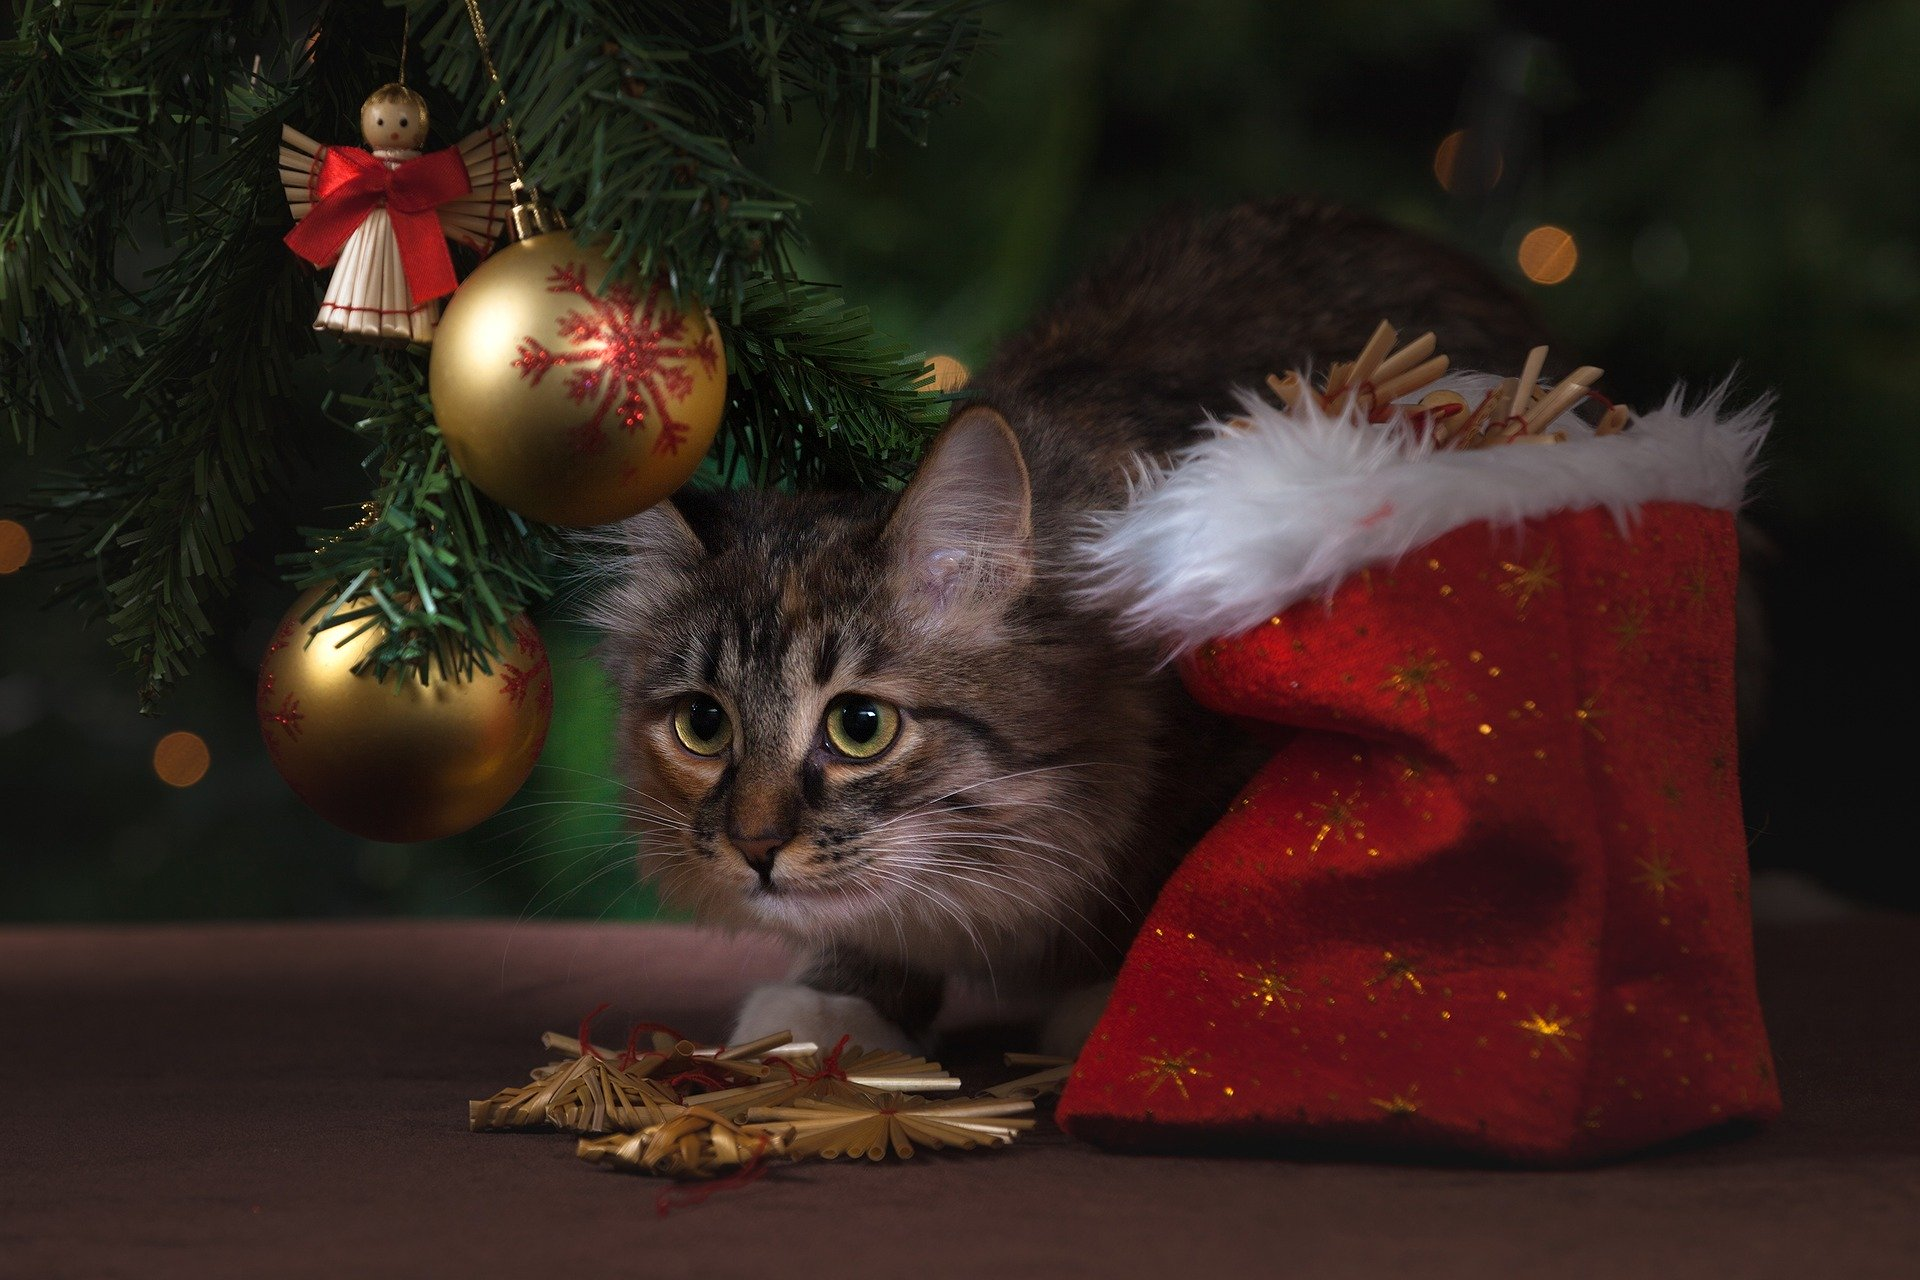 Winter Holiday Plants That are Hazardous for Pets